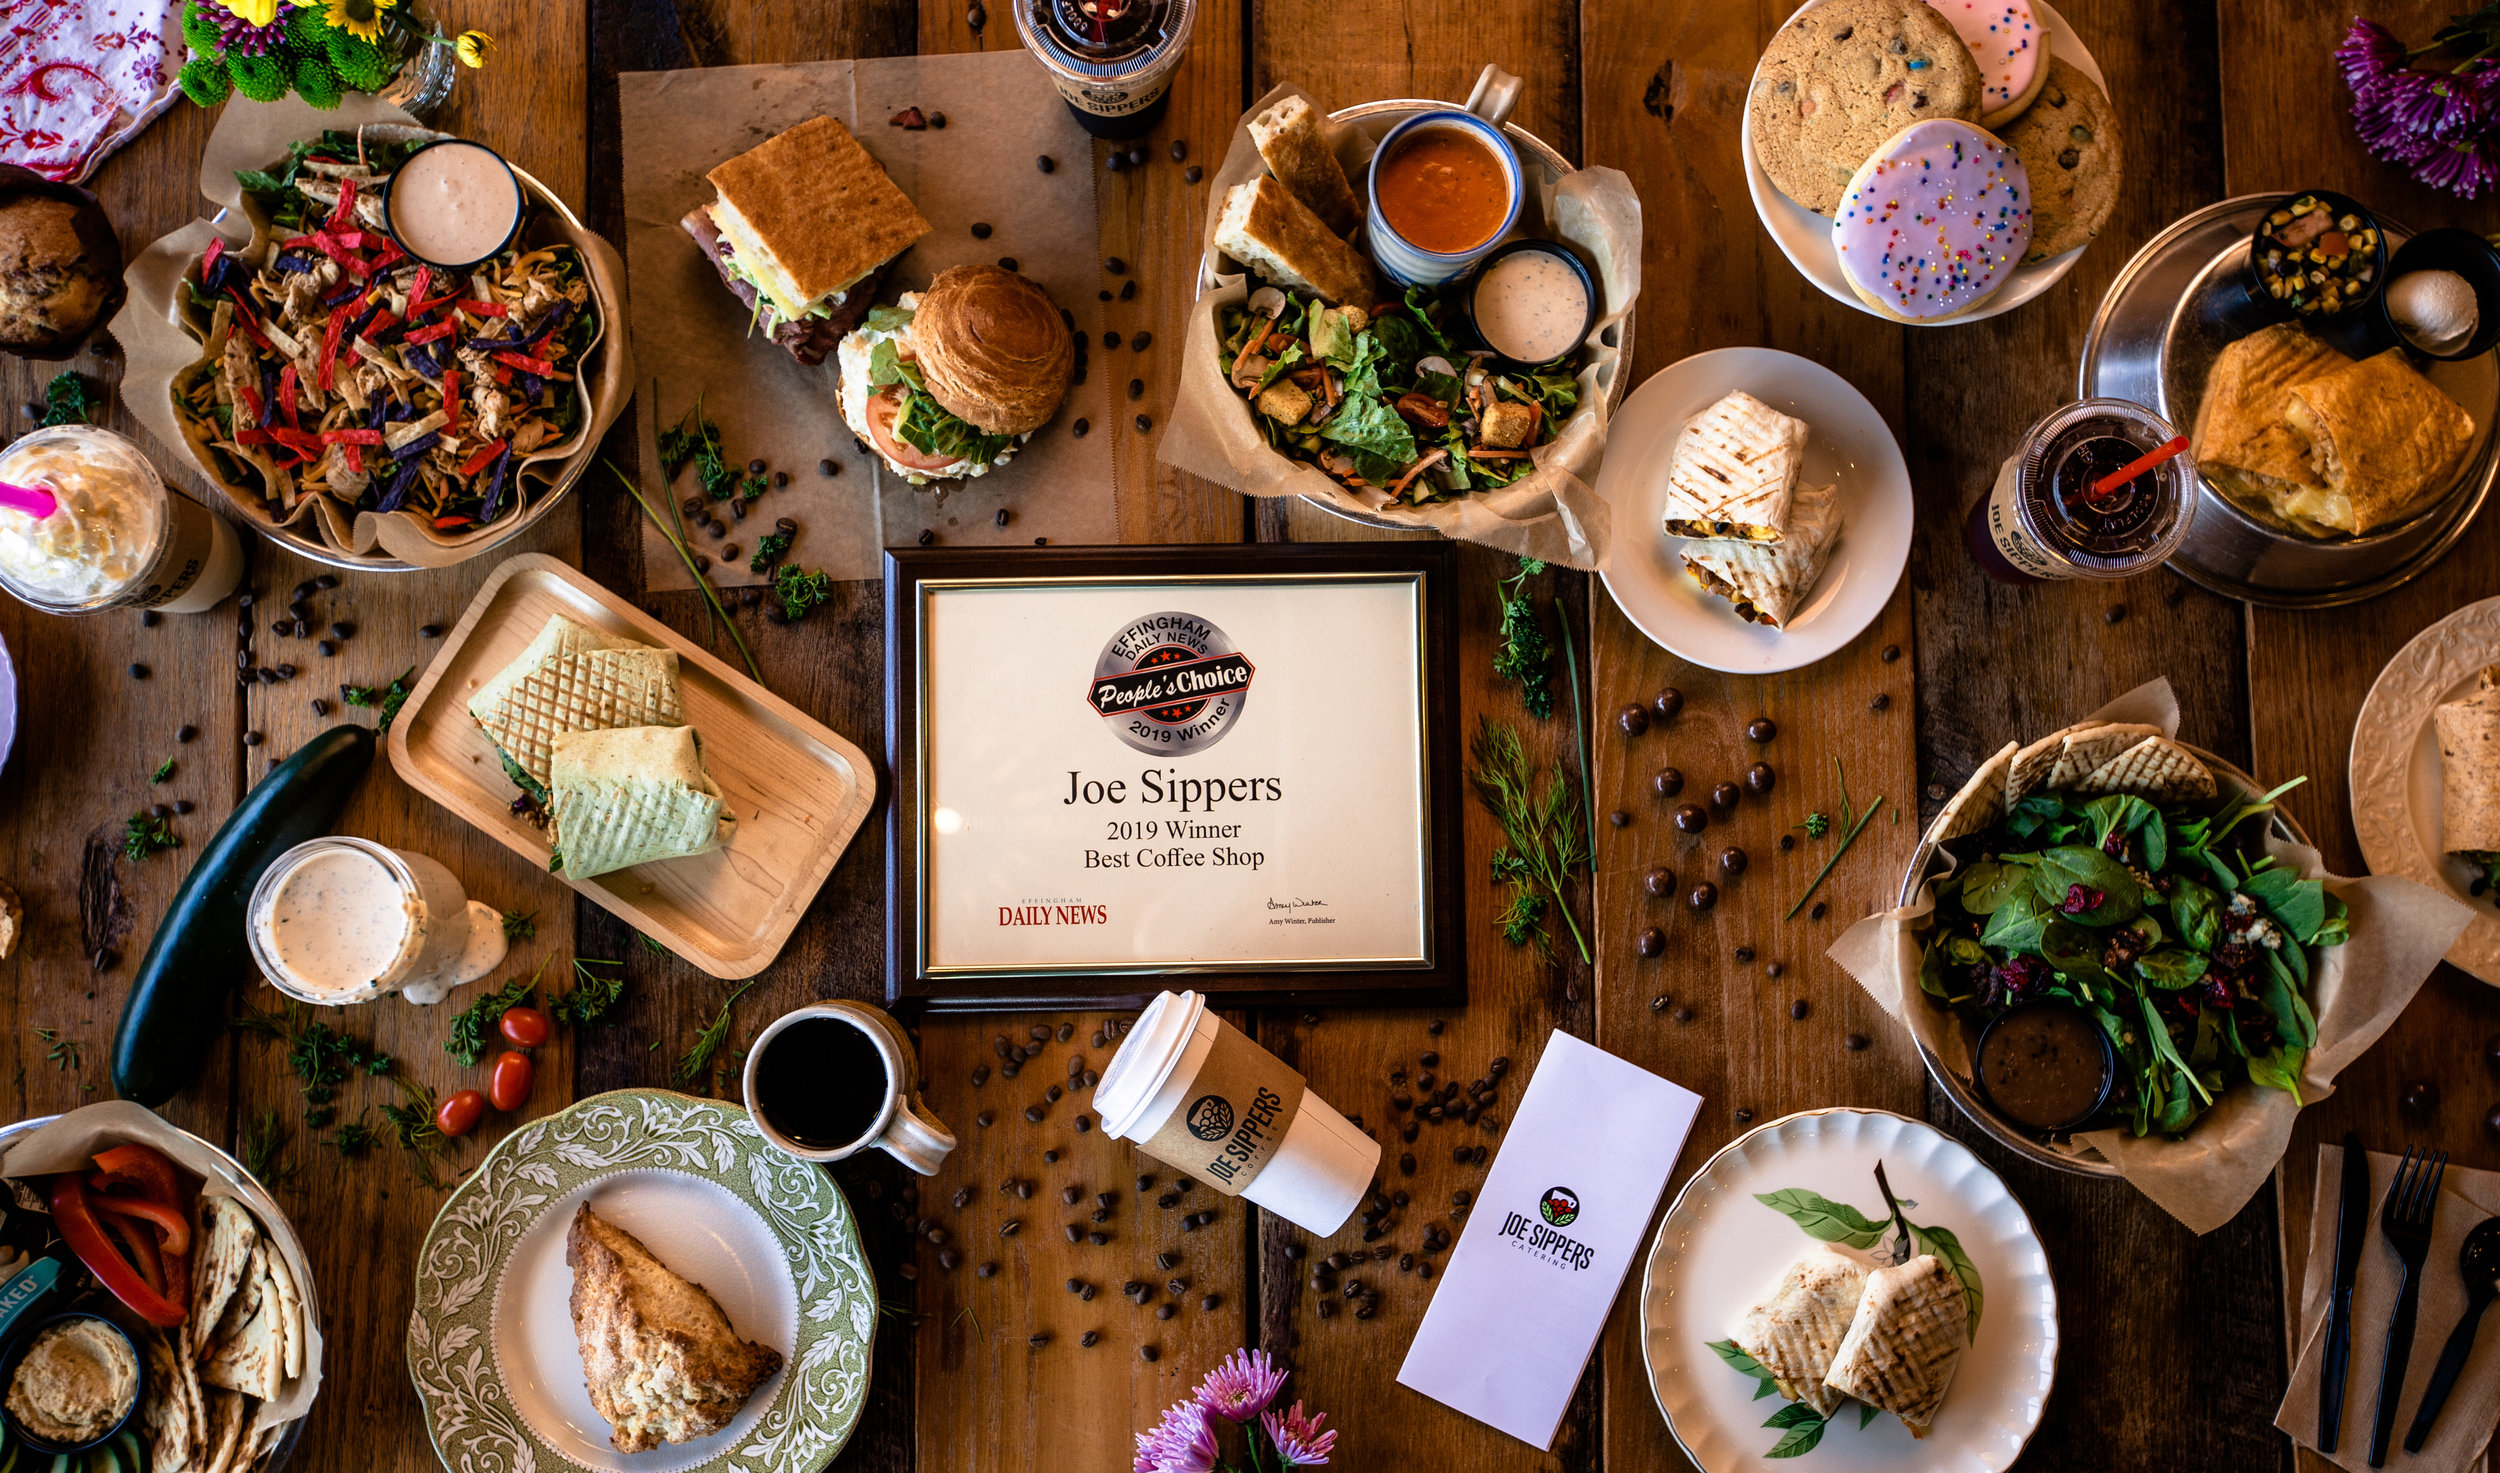 2019 BEST COFFEE SHOP - Effingham Daily News People's Choice